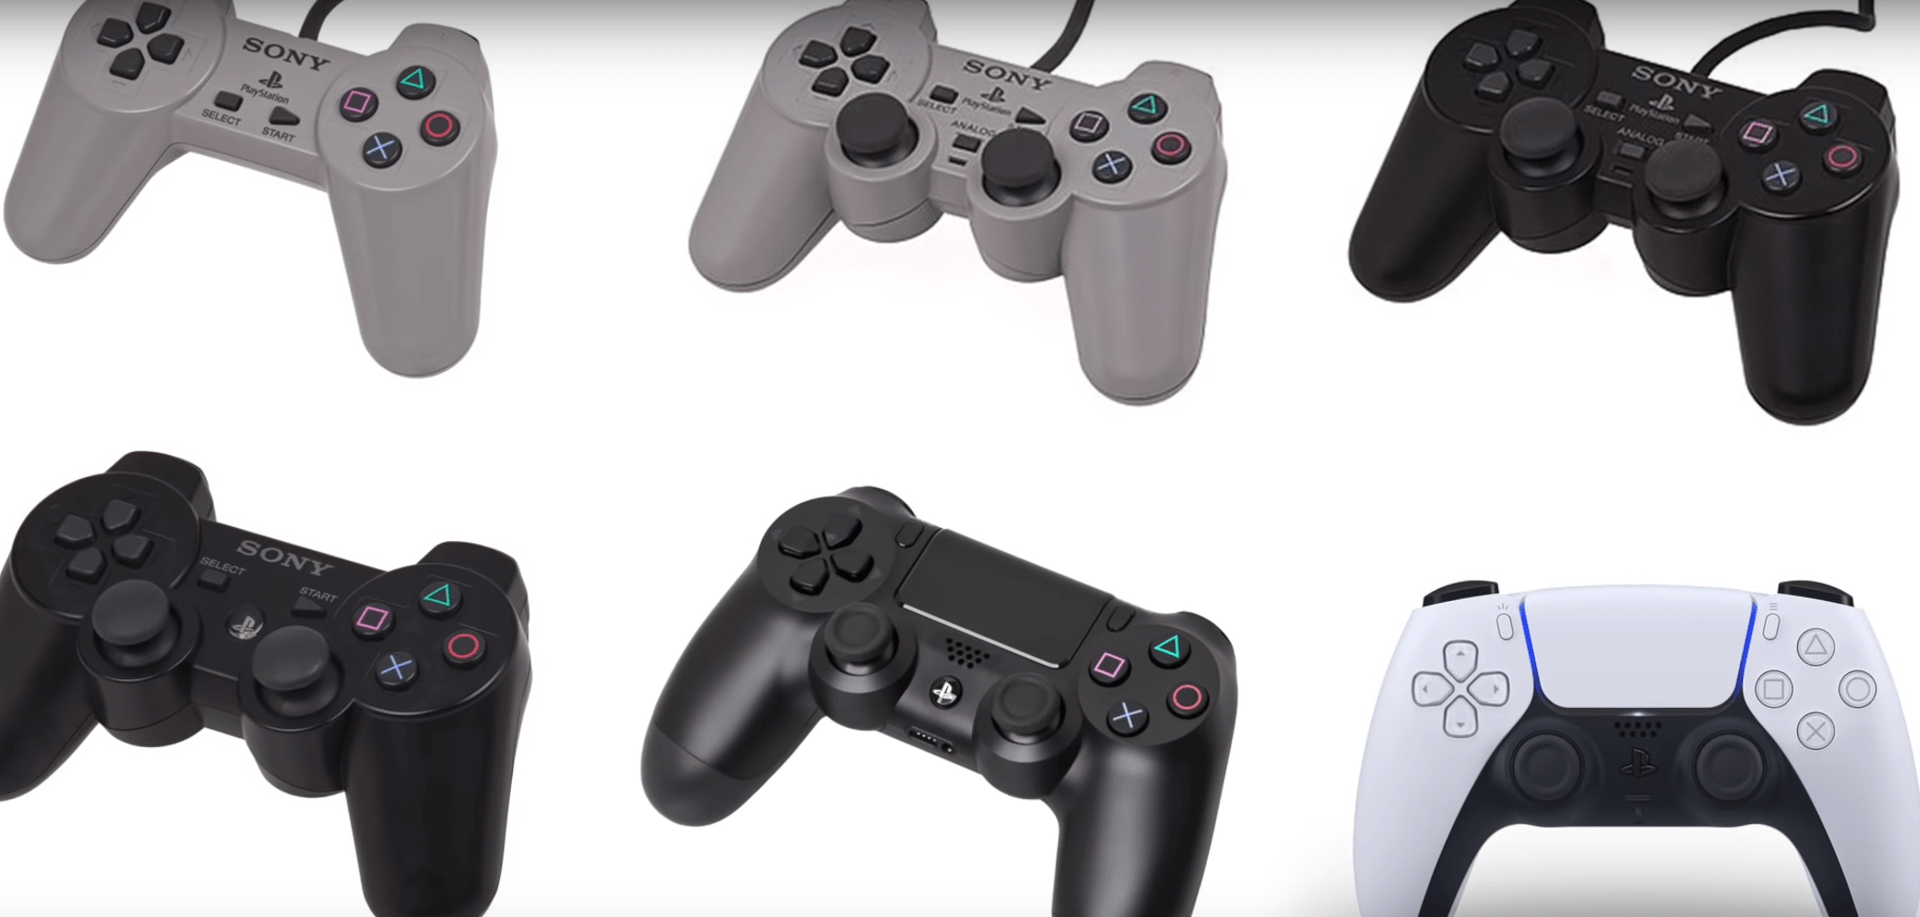 Sony Reveals The New PlayStation 5 Controller, Making Drastic Changes Over Predecessors